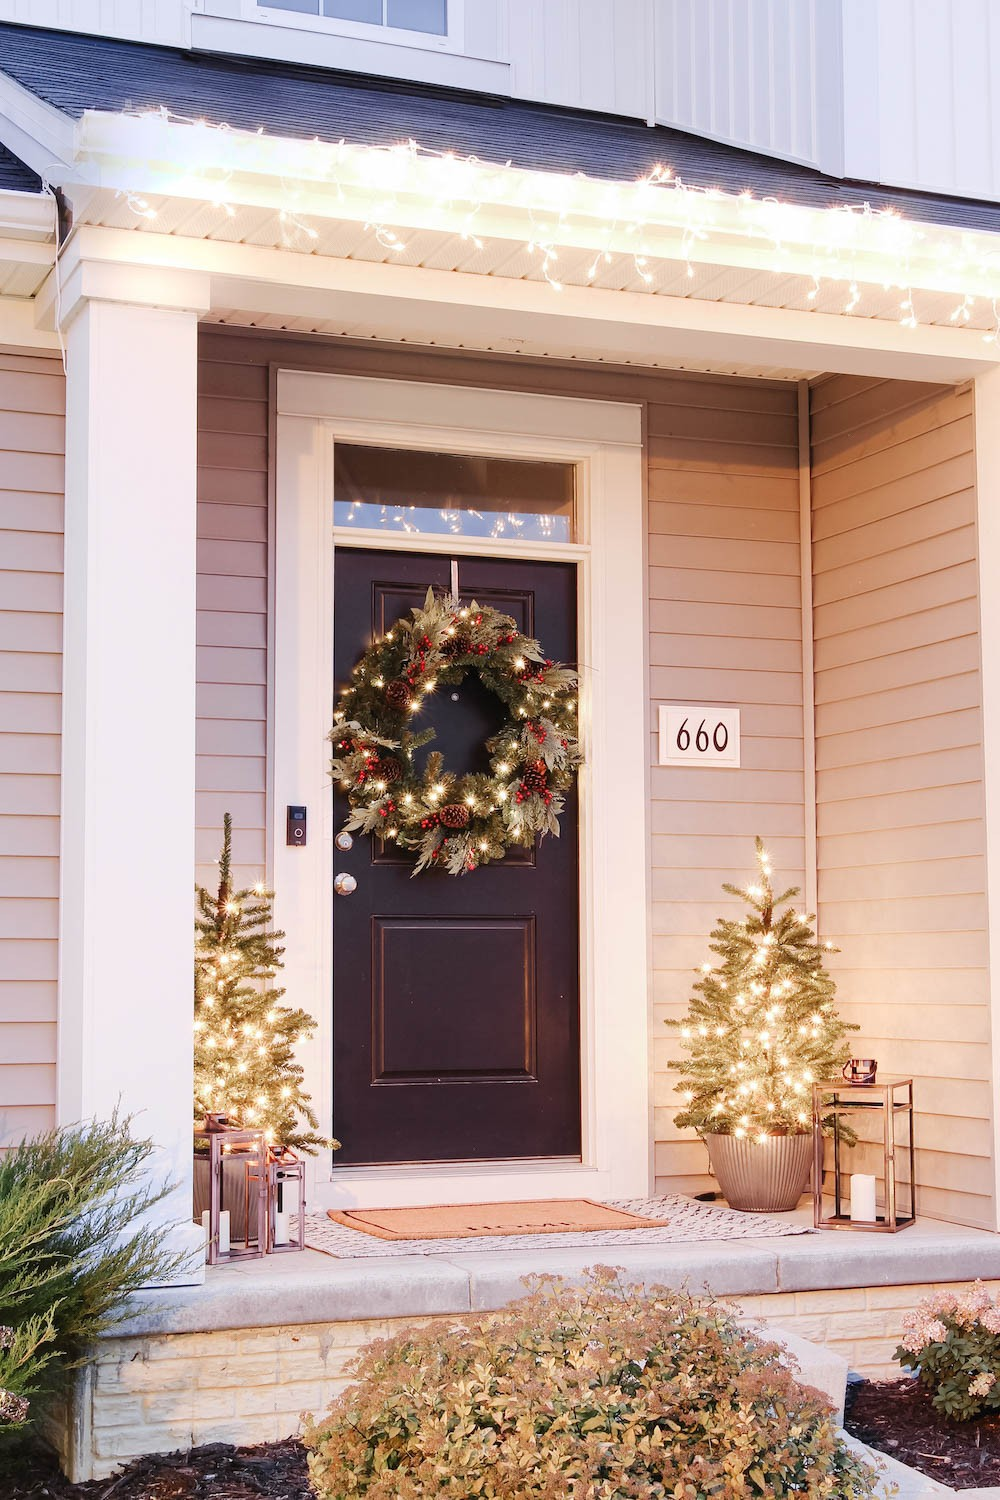 Natural Winter Wonderland Exterior Decor for the Holiday